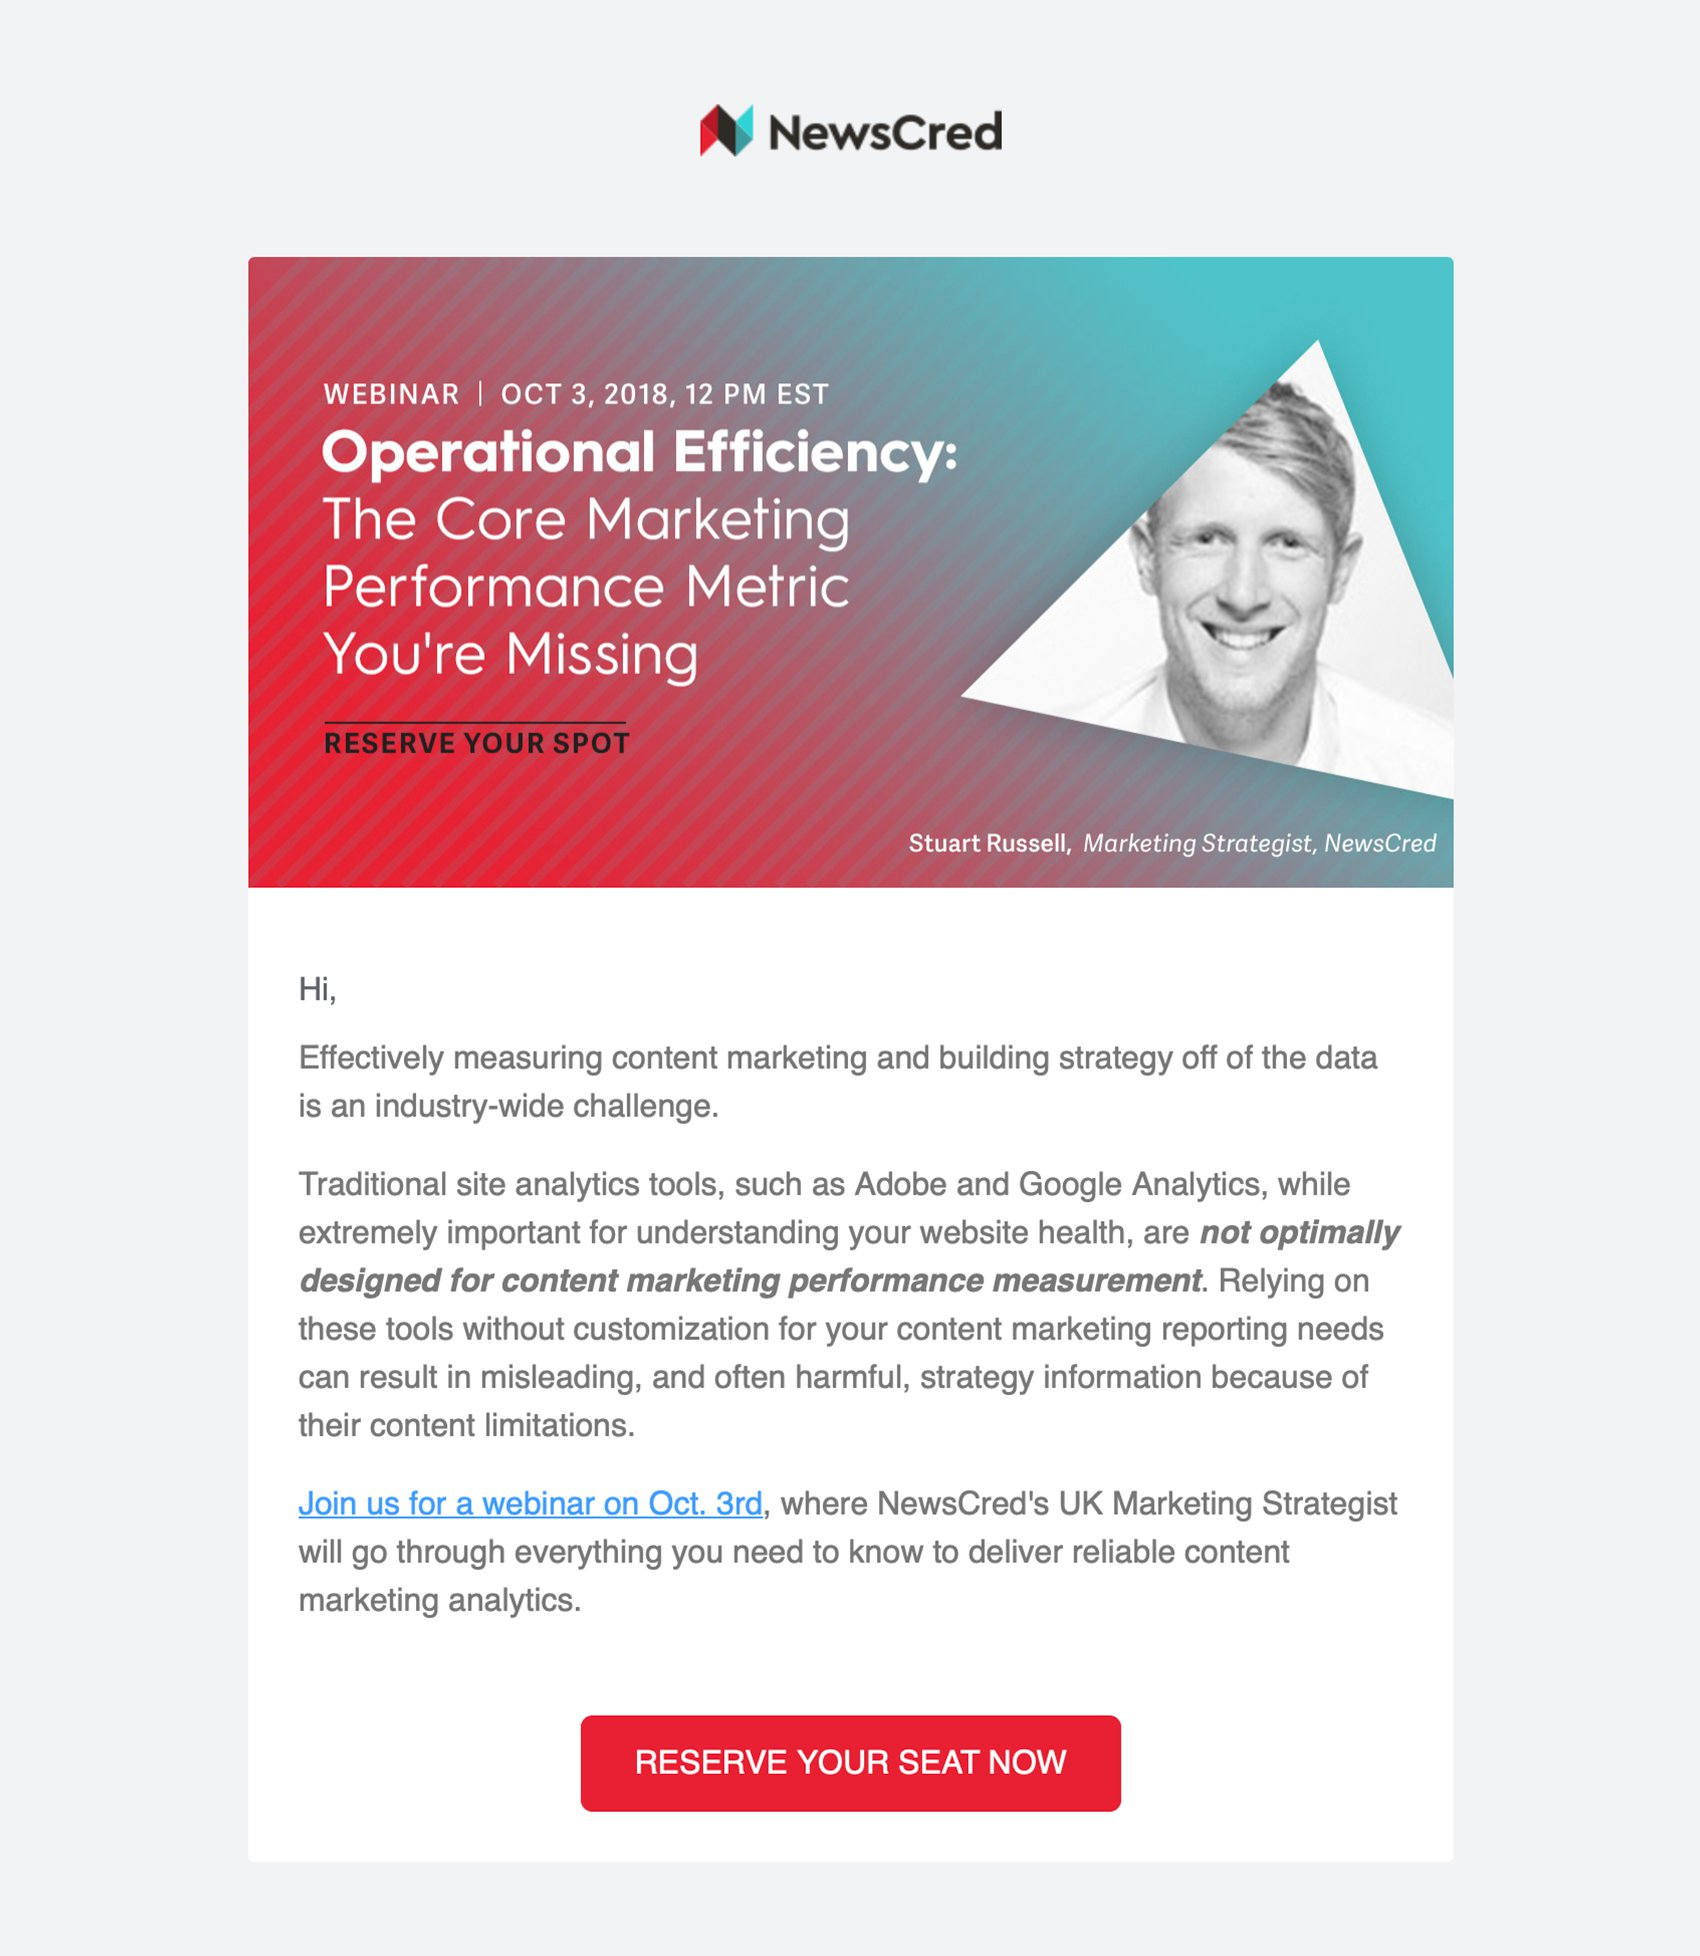 B2B Email Marketing: 11 outstanding examples - MailerLite